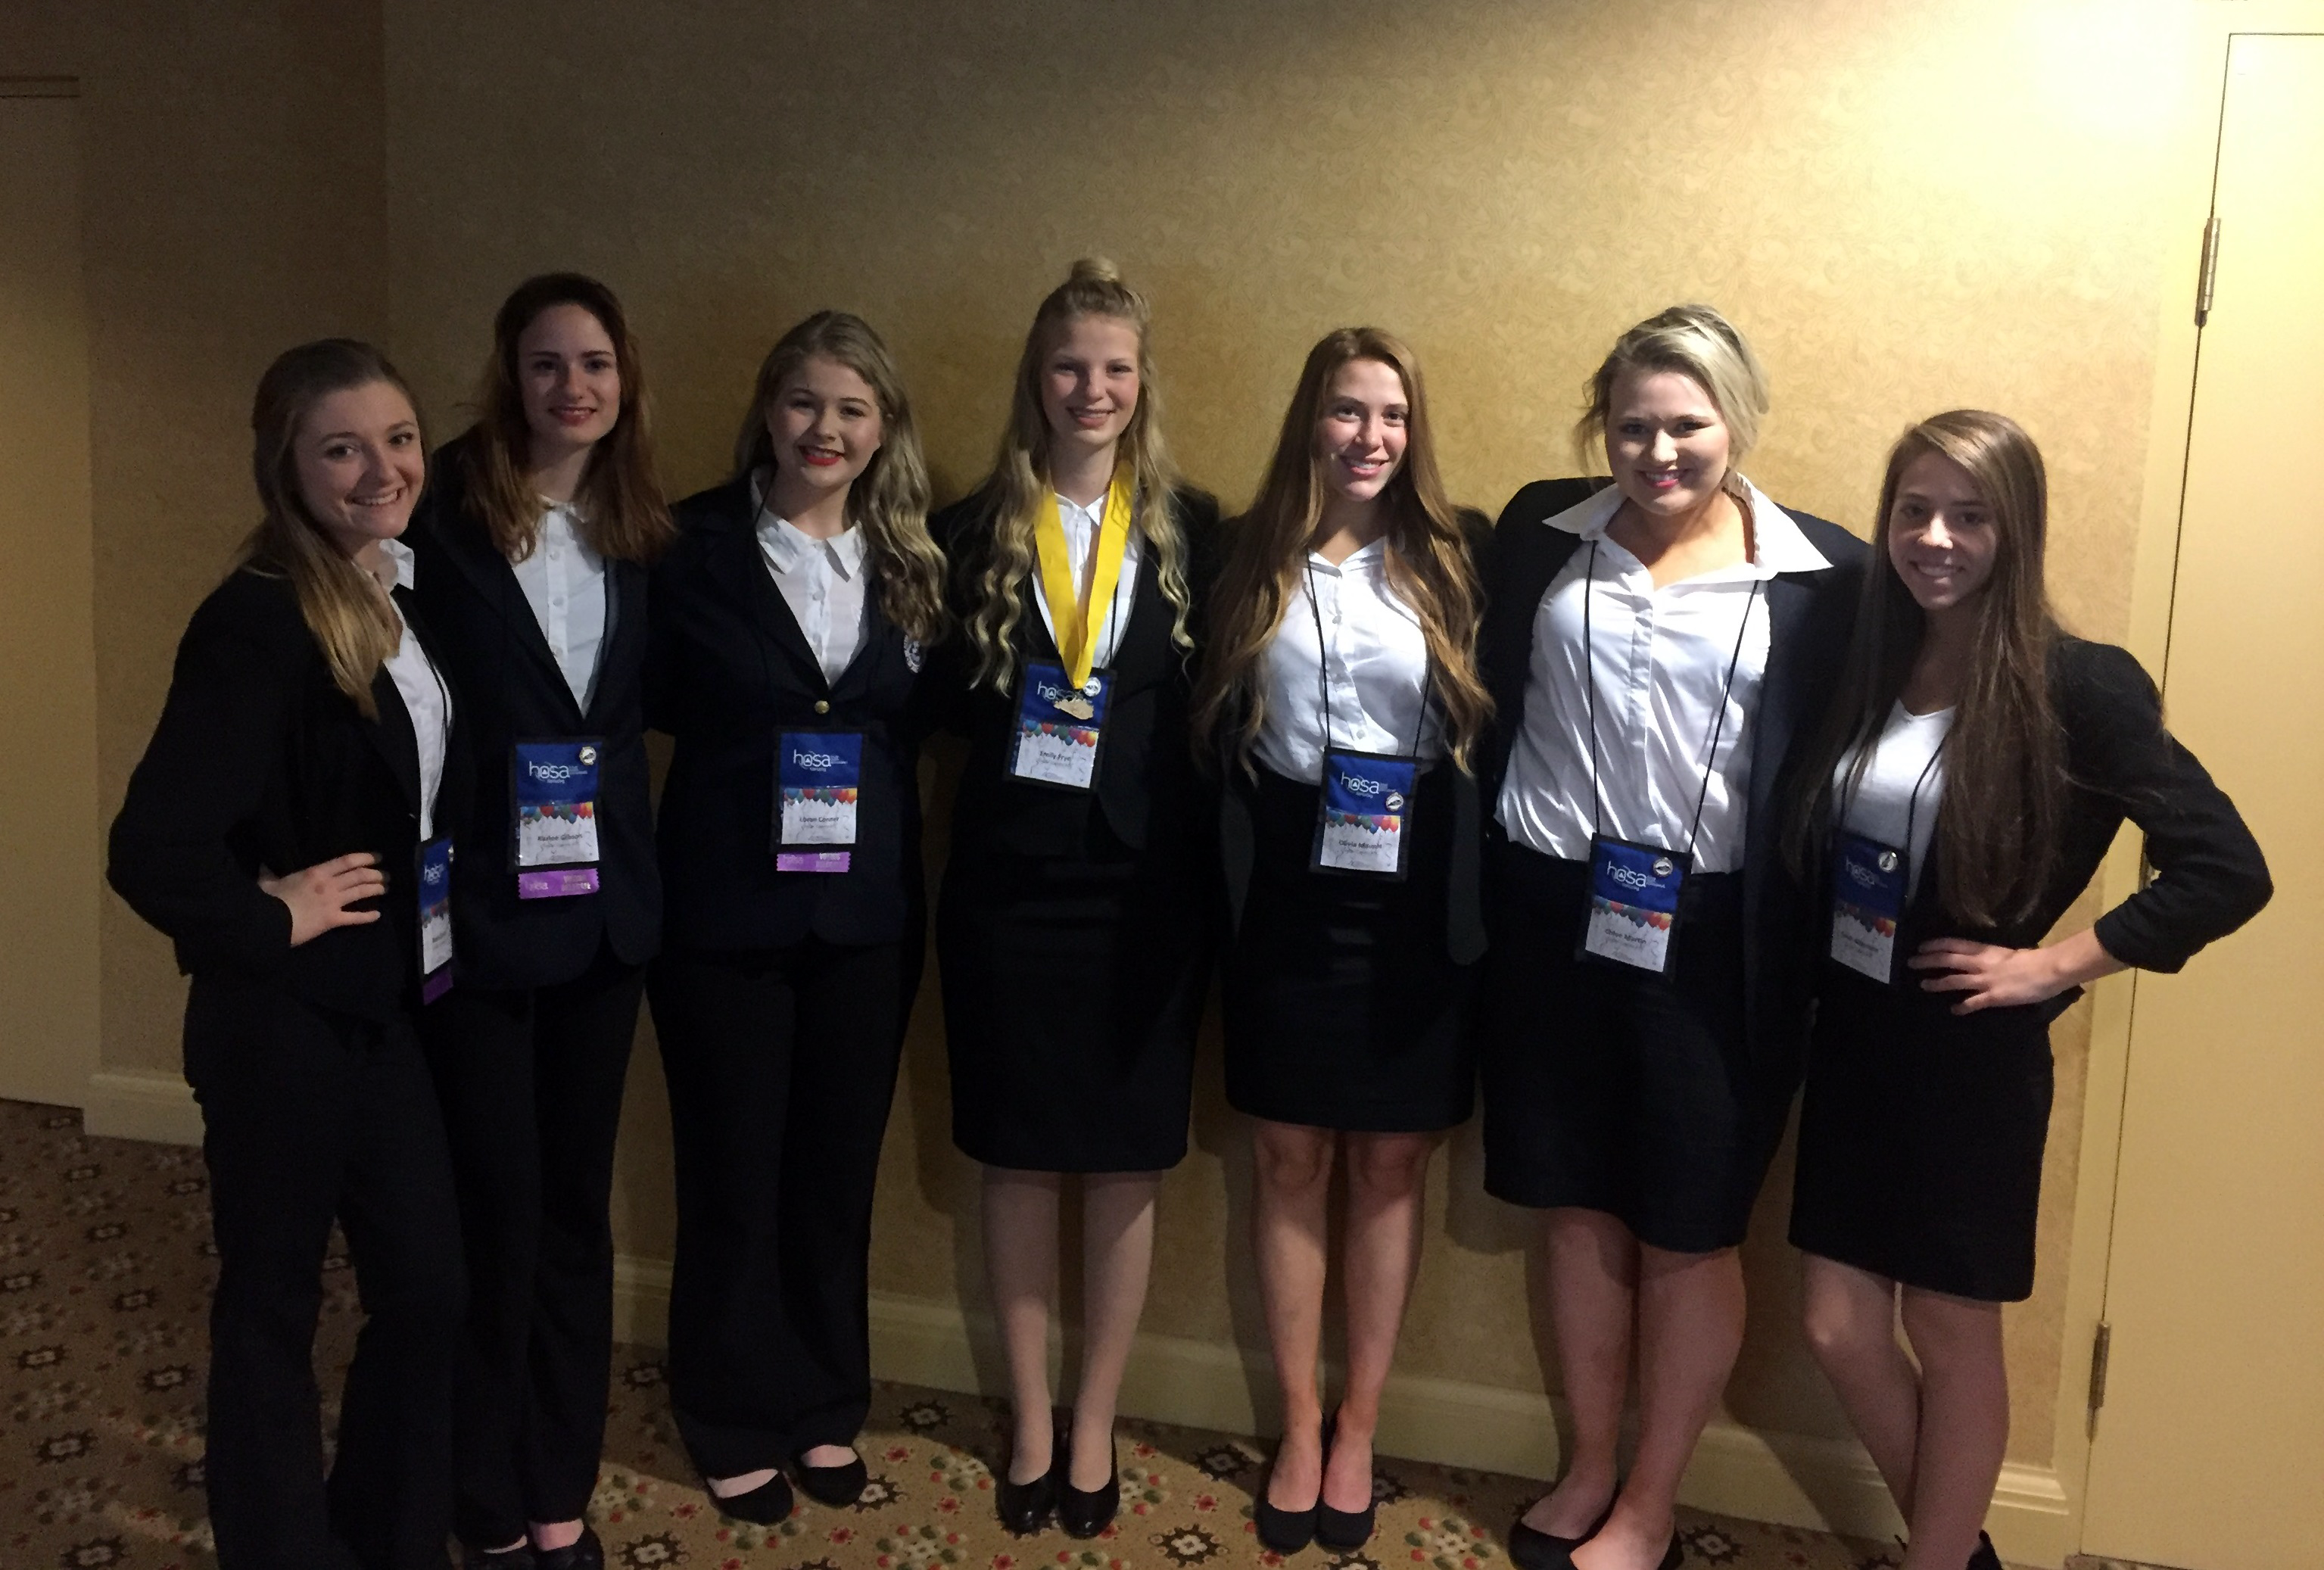 Members of the CCATC HOSA organization competed at the State Leadership Conference, where senior Emily Frye won first place in the Home Health Aide competition.